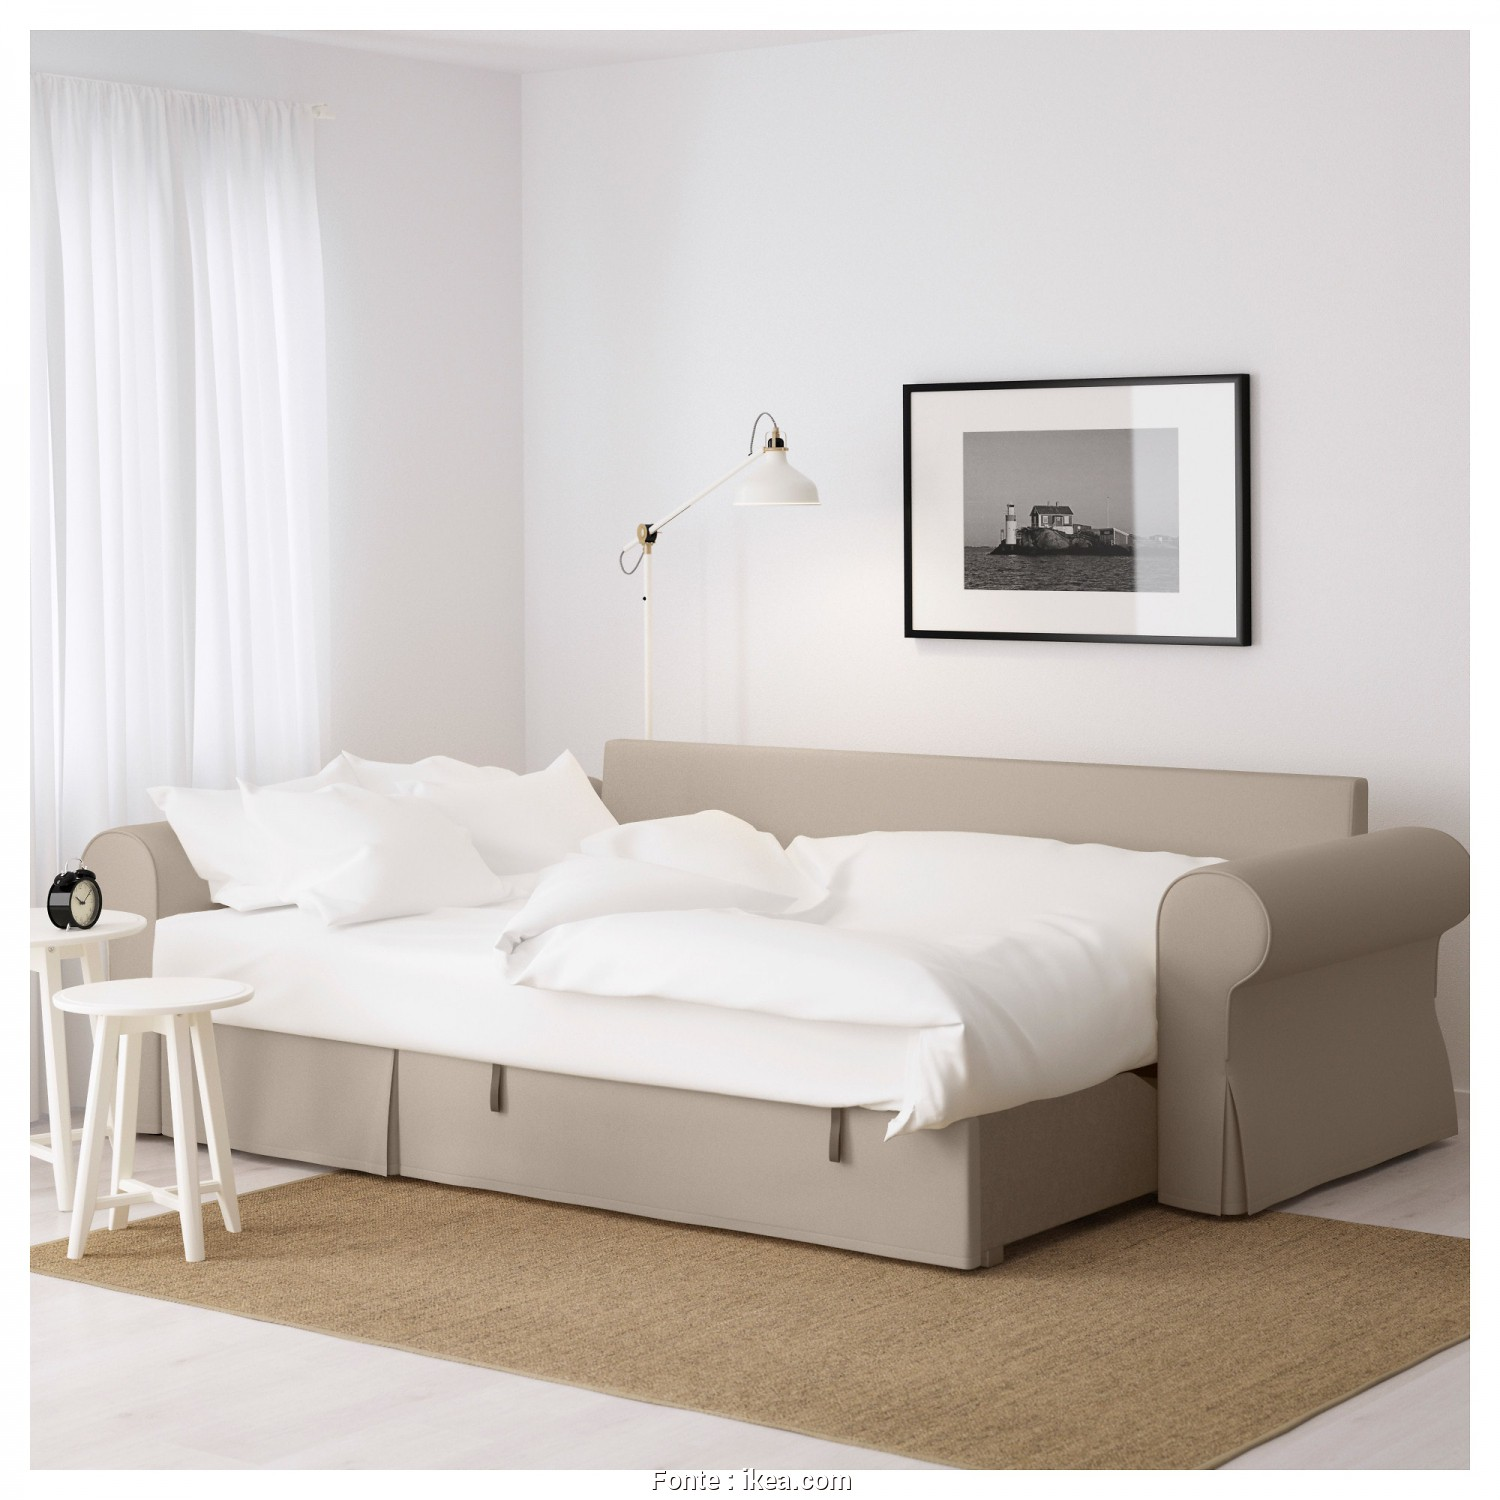 Backabro Ikea Review, Bellissimo IKEA BACKABRO Sofa, With Chaise Longue Readily Converts Into A Bed